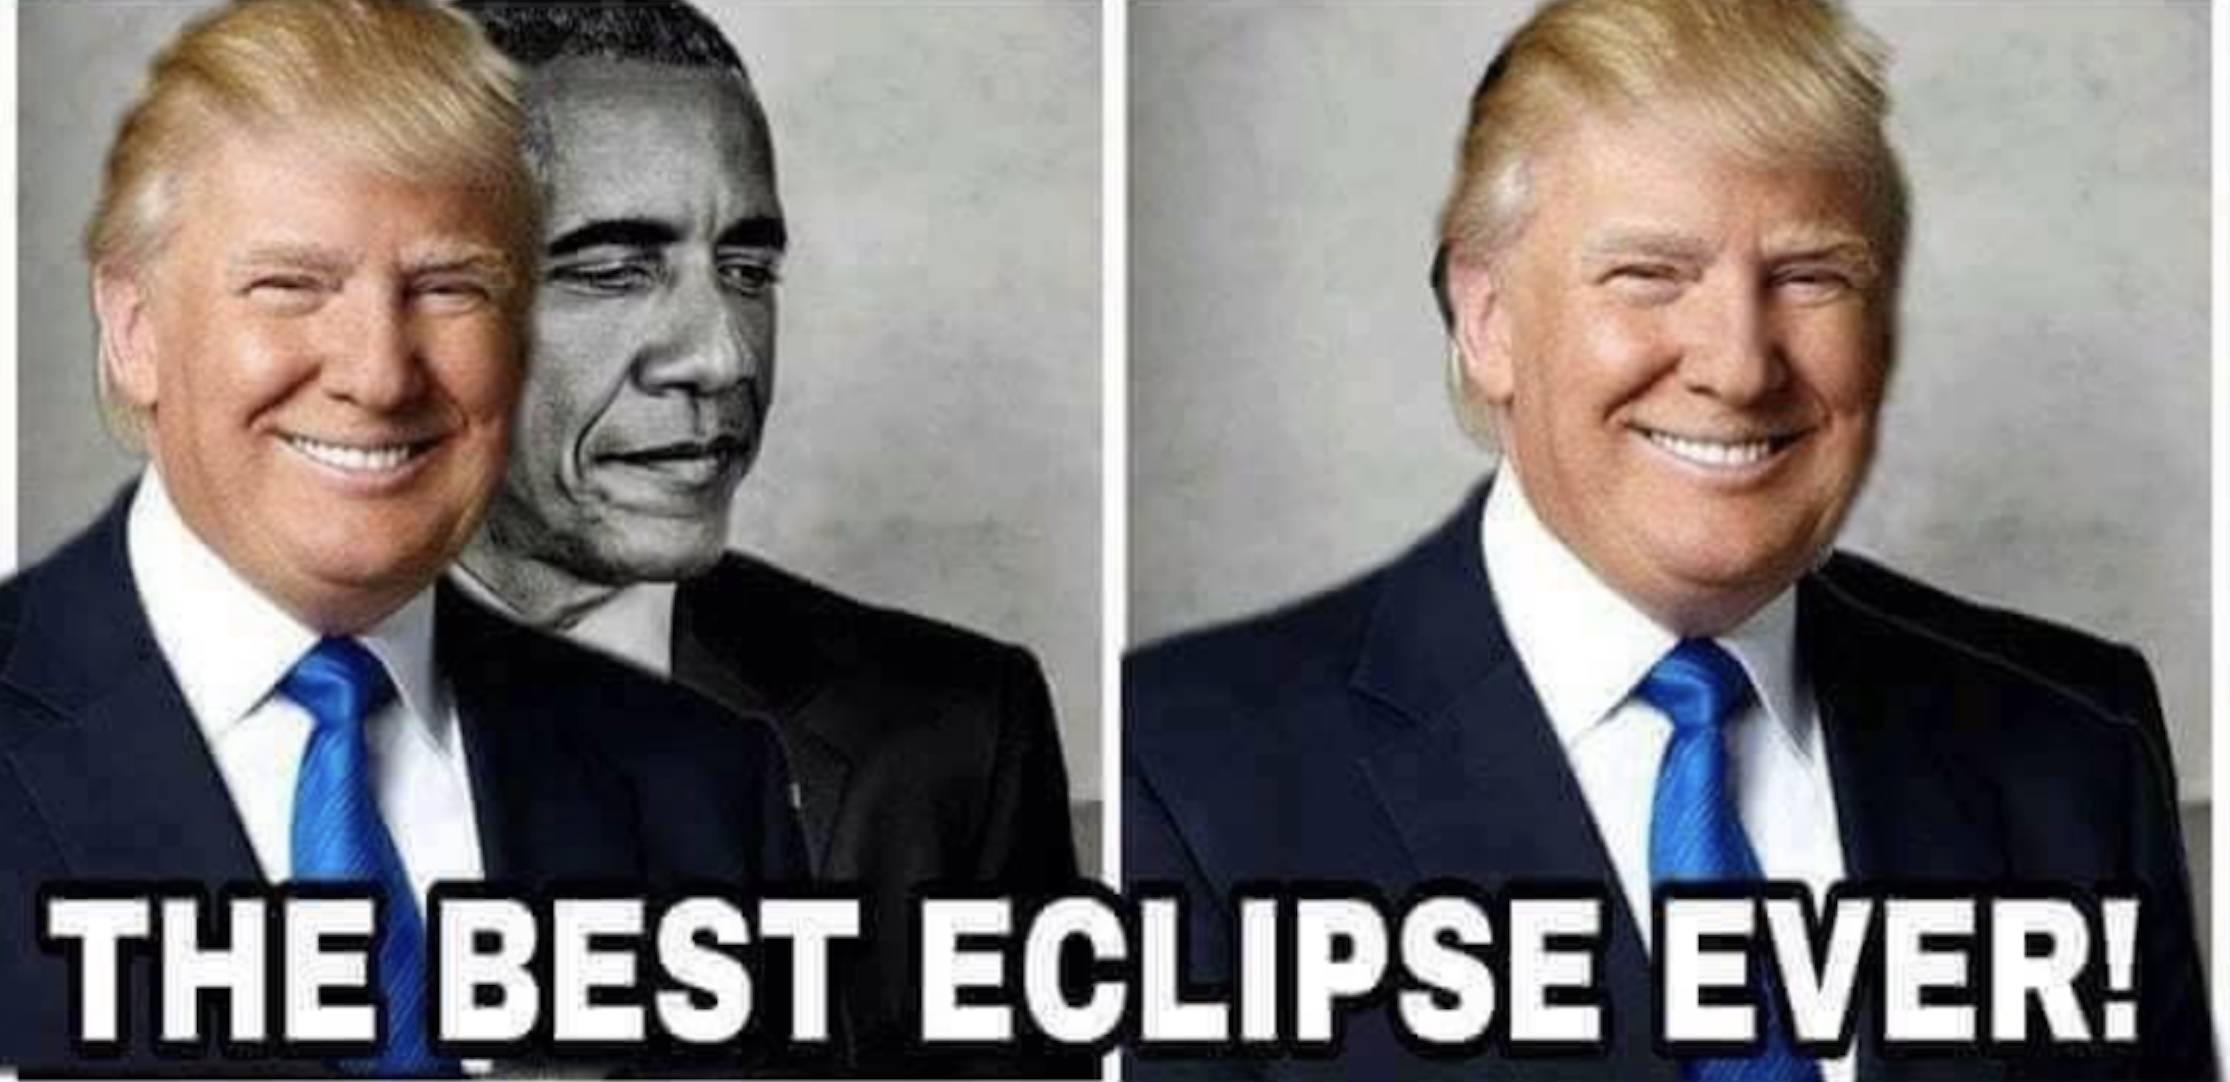 President trump retweets obama eclipse meme is it funny or offensive